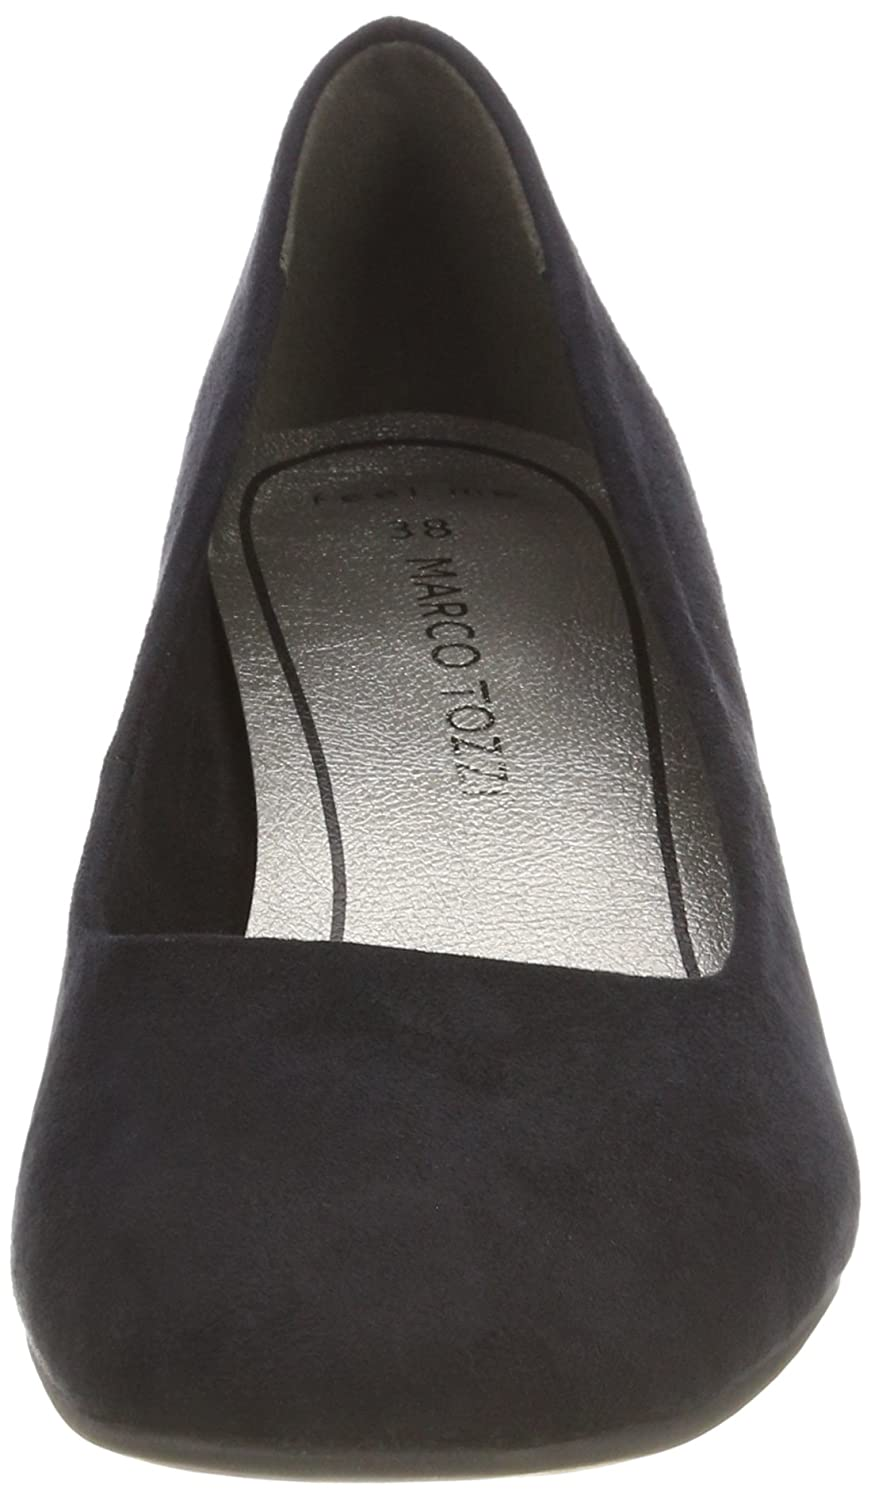 Toe Tozzi Amazon Pumps 840 2 Women's uk 22403 co Marco Closed 31 dF0fwqqxp